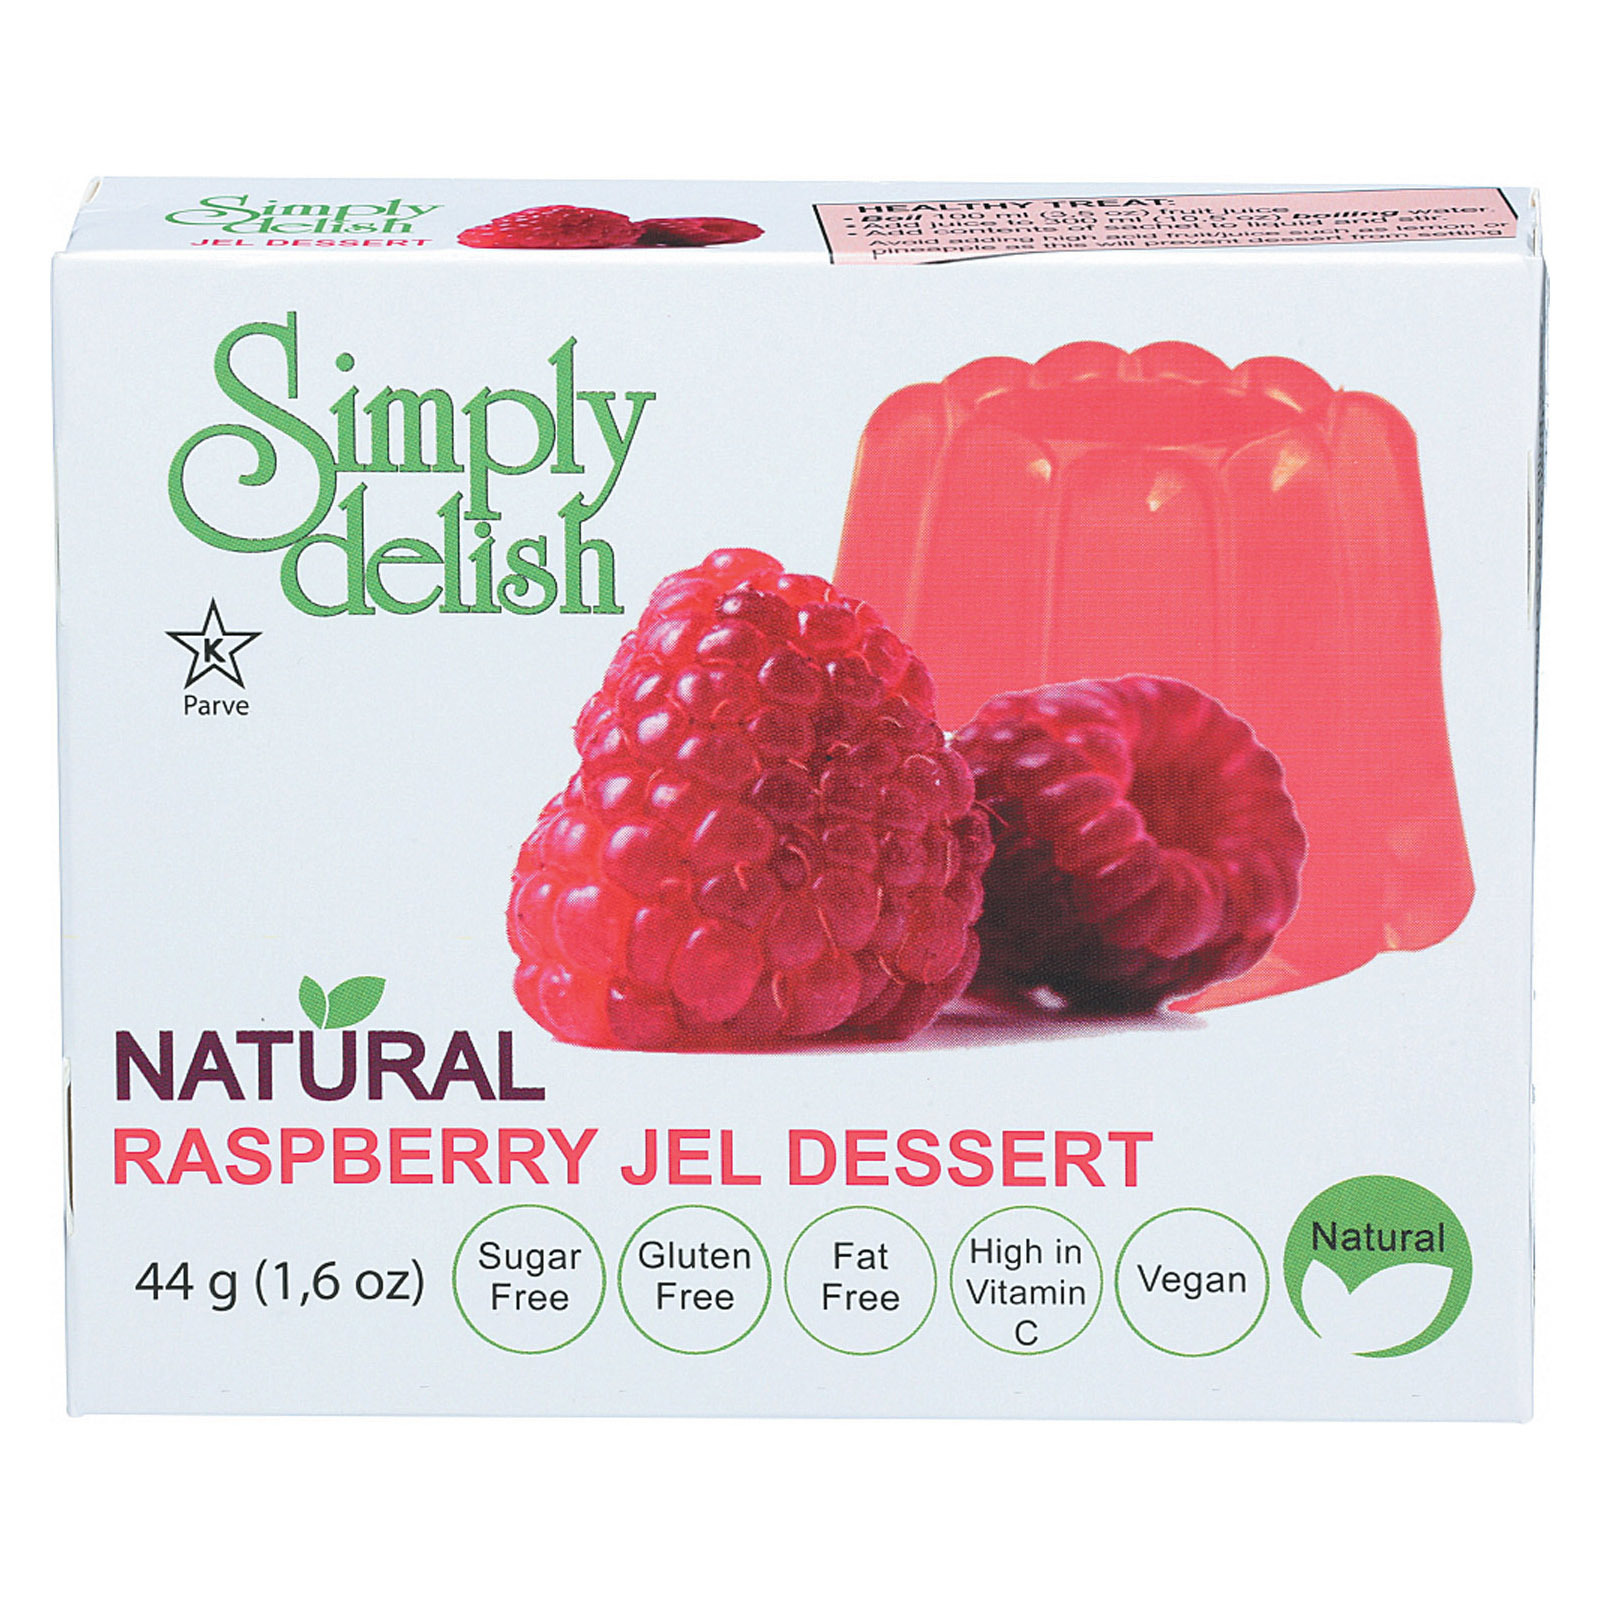 Simply Delish Jel Dessert - Raspberry - Case of 6 - 1.6 oz.